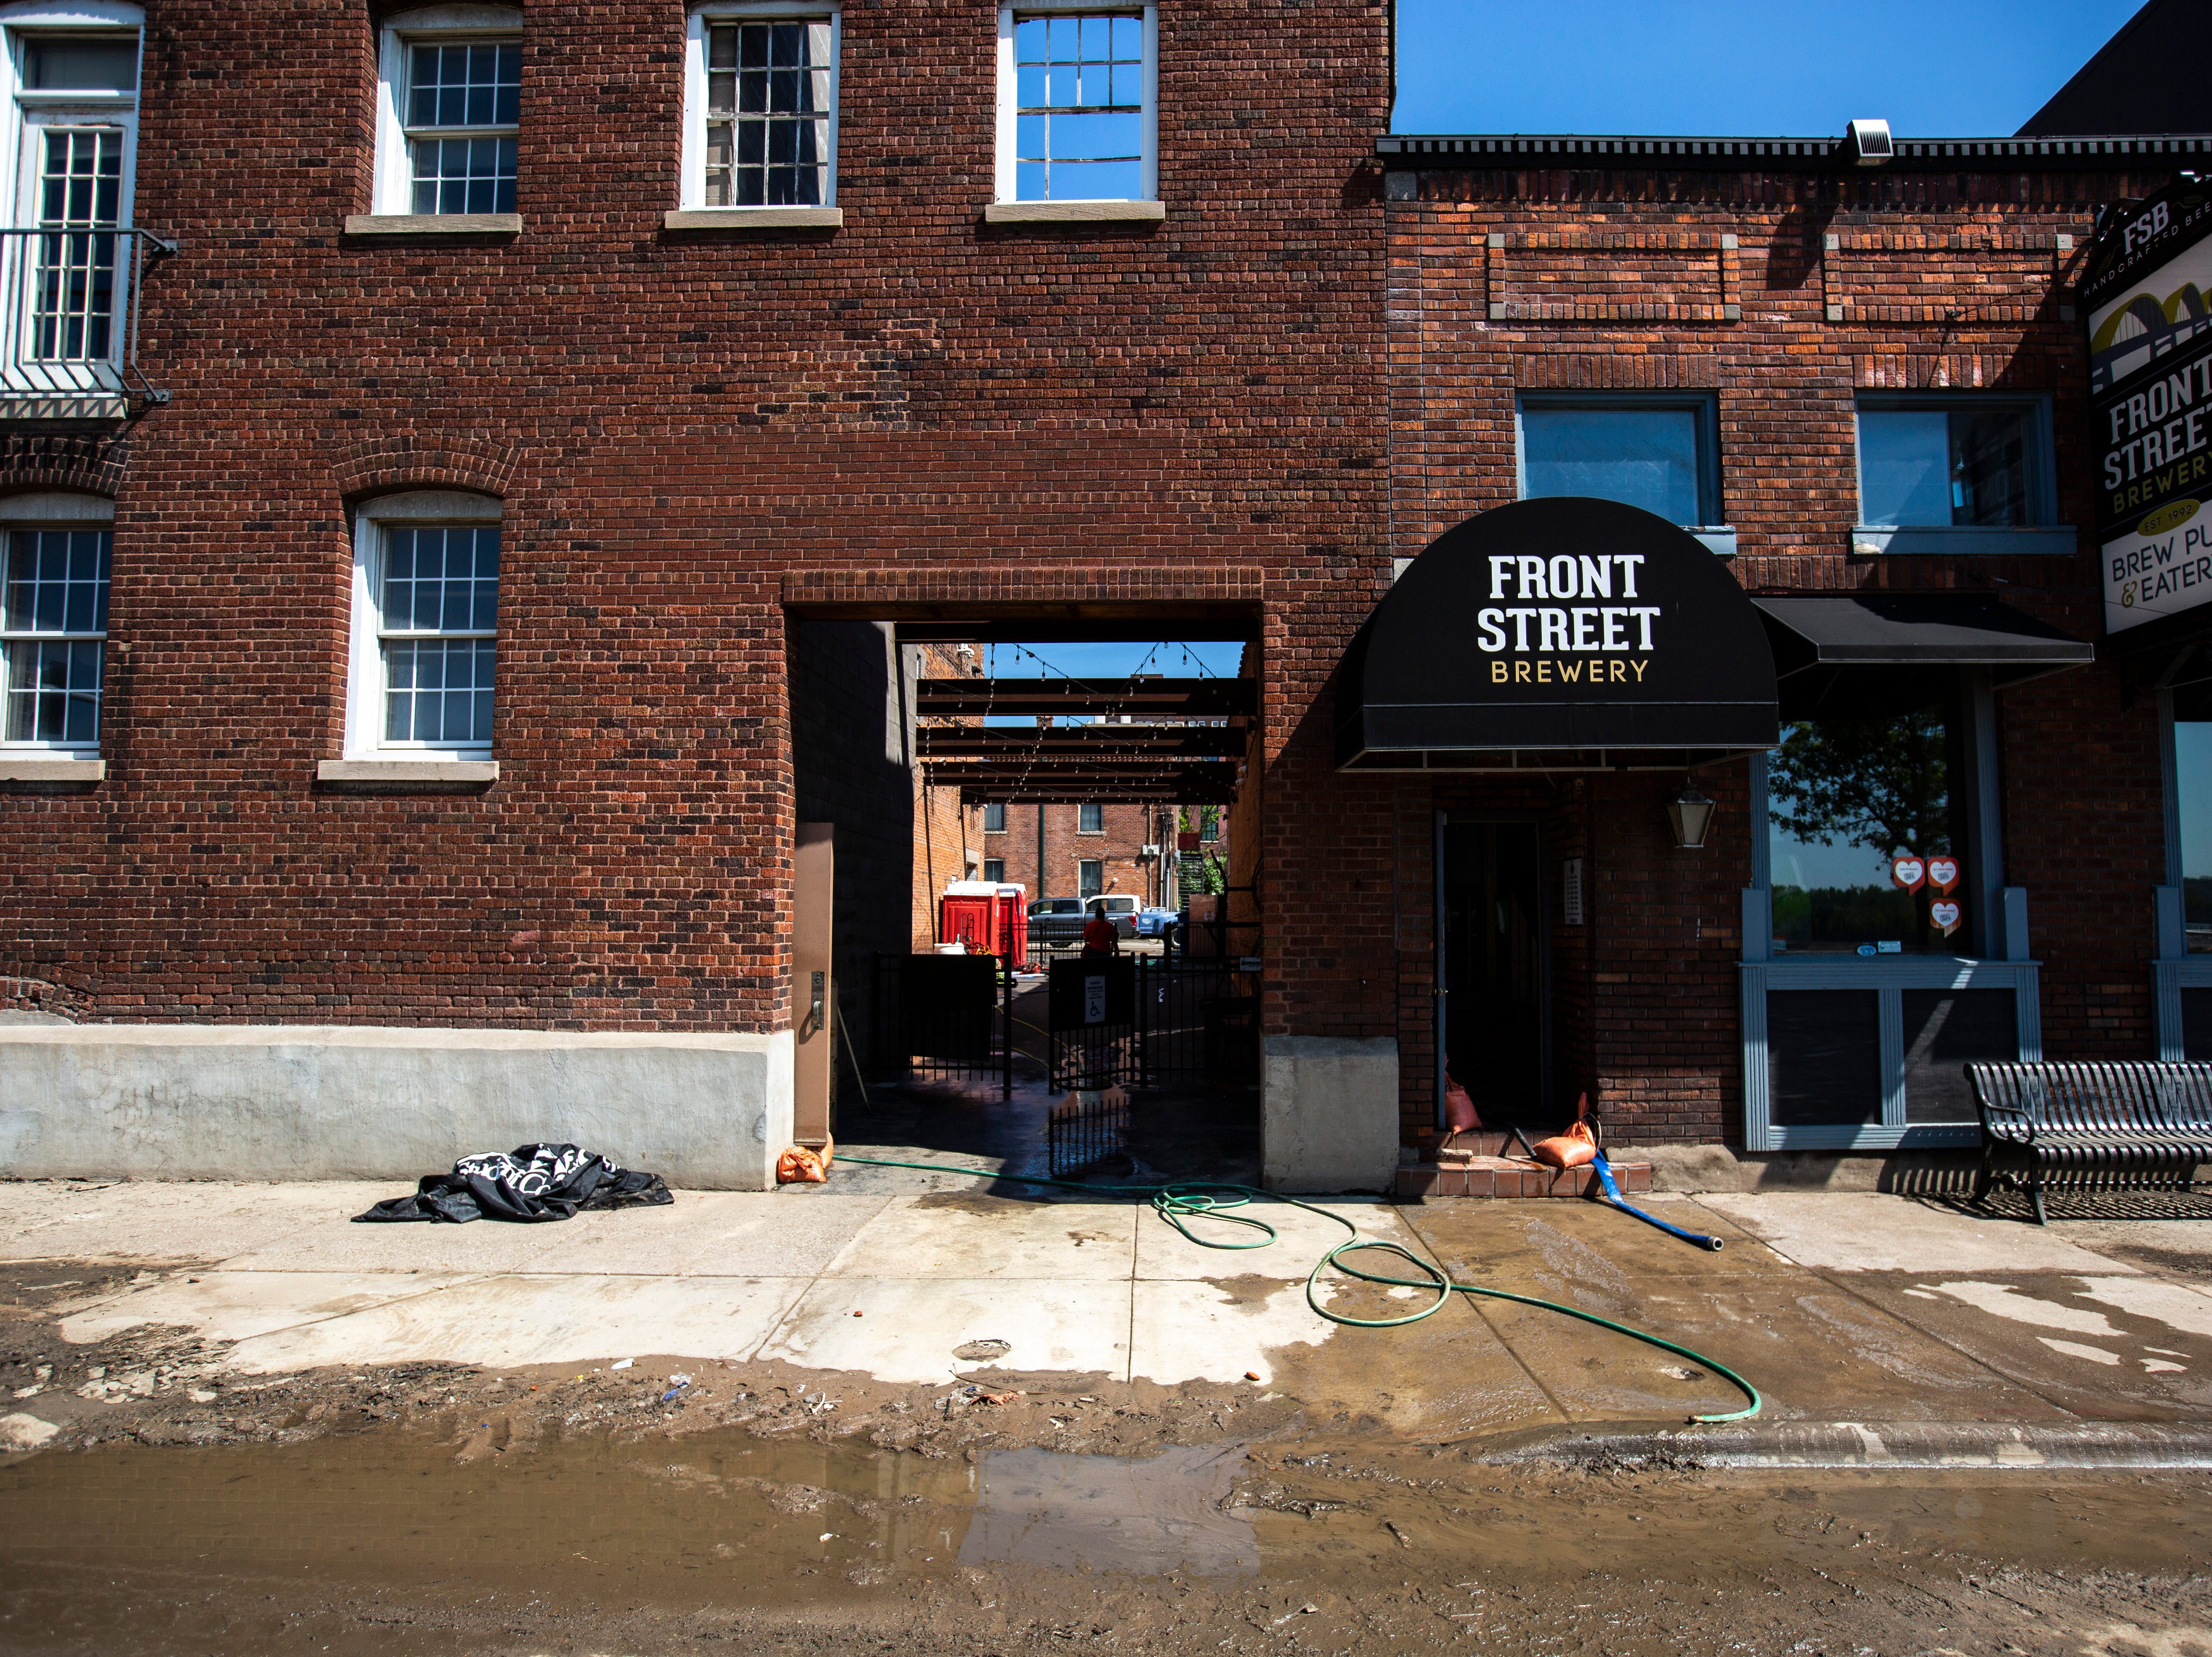 Mud mixes with clean water outside of Front Street Brewery as cleanup begins after floodwaters receded, Wednesday, May 15, 2019, in downtown Davenport, Iowa.